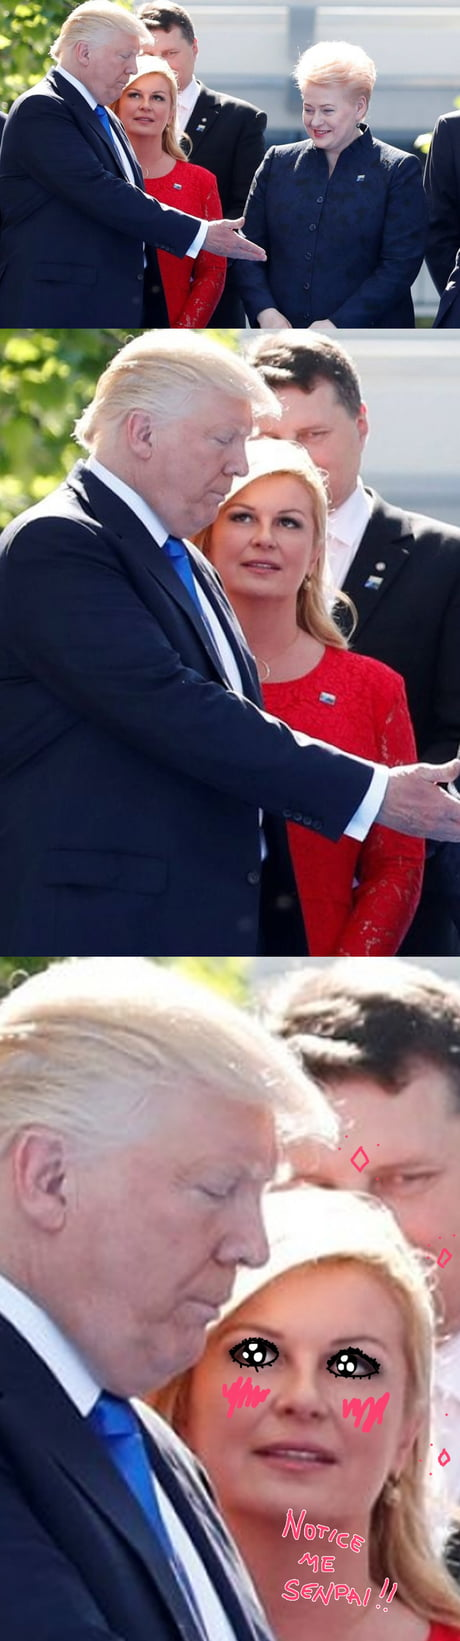 Life goals: have someone that looks at you like Croatian president looks at Trump